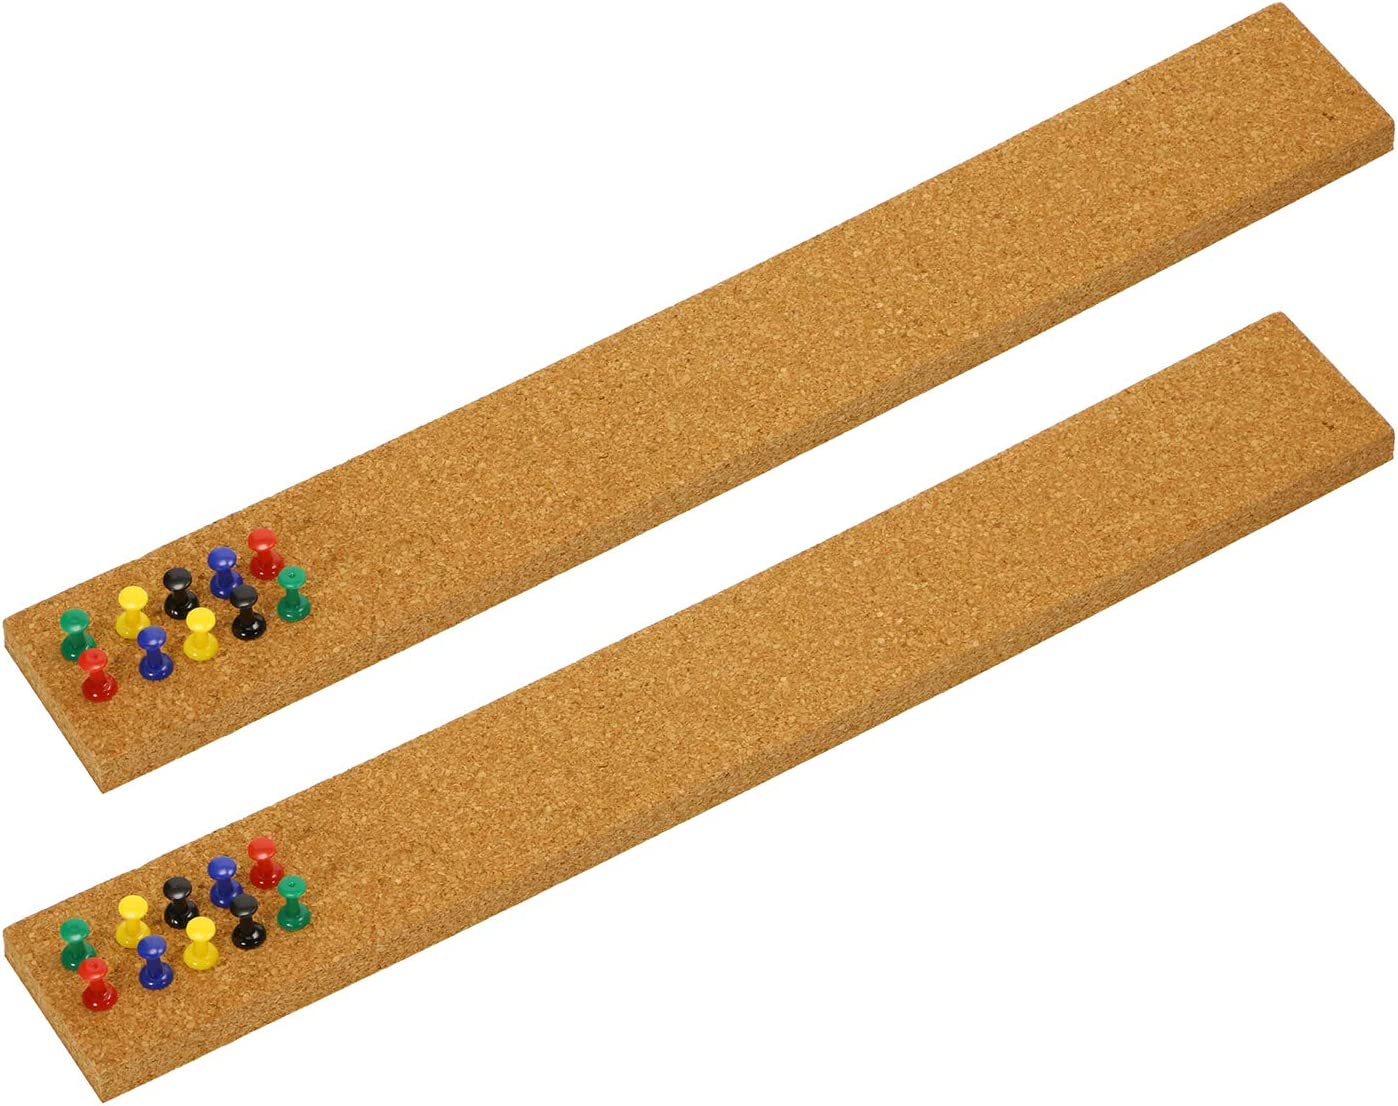 """Tupalizy 2PCS Cork Boards for Walls 14.96"""" x 1.97"""" Adhesive Strips Thick Bulletin Board Bars with 20PCS Push Pins for Hanging Notes Fridge Small Space Home Decor Office School Classroom Household Use"""